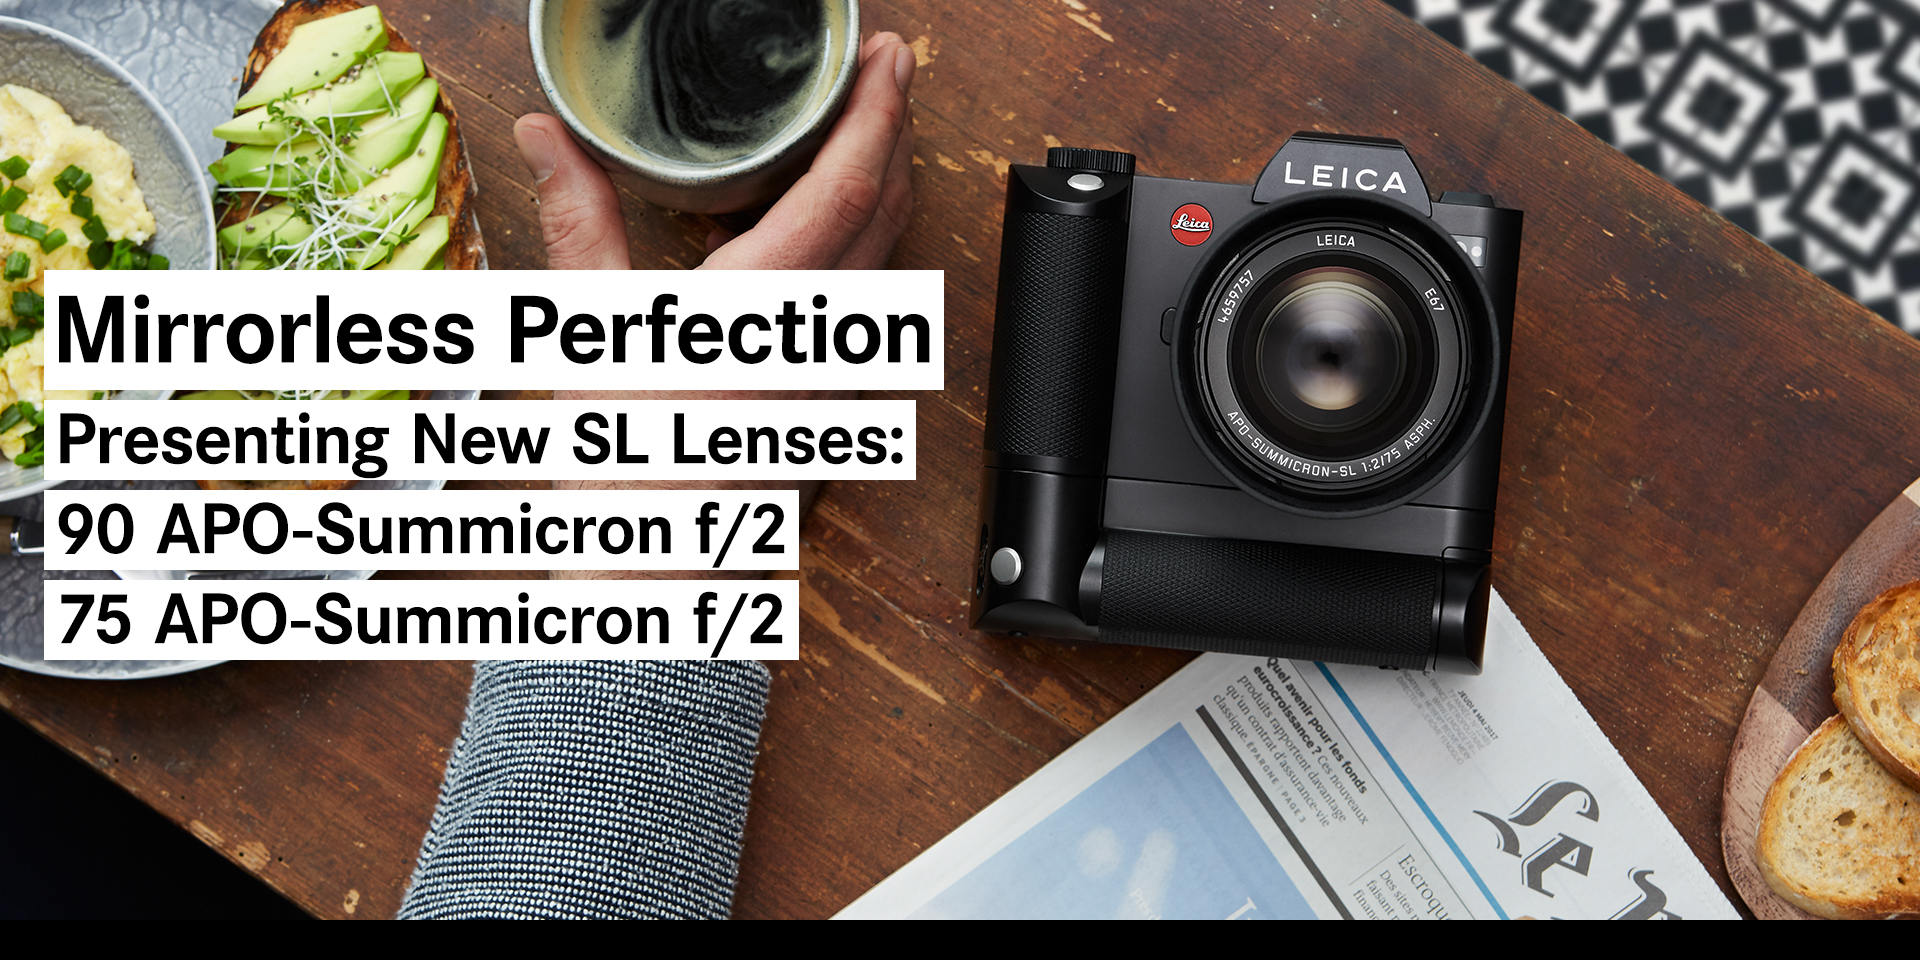 The Leica SL System